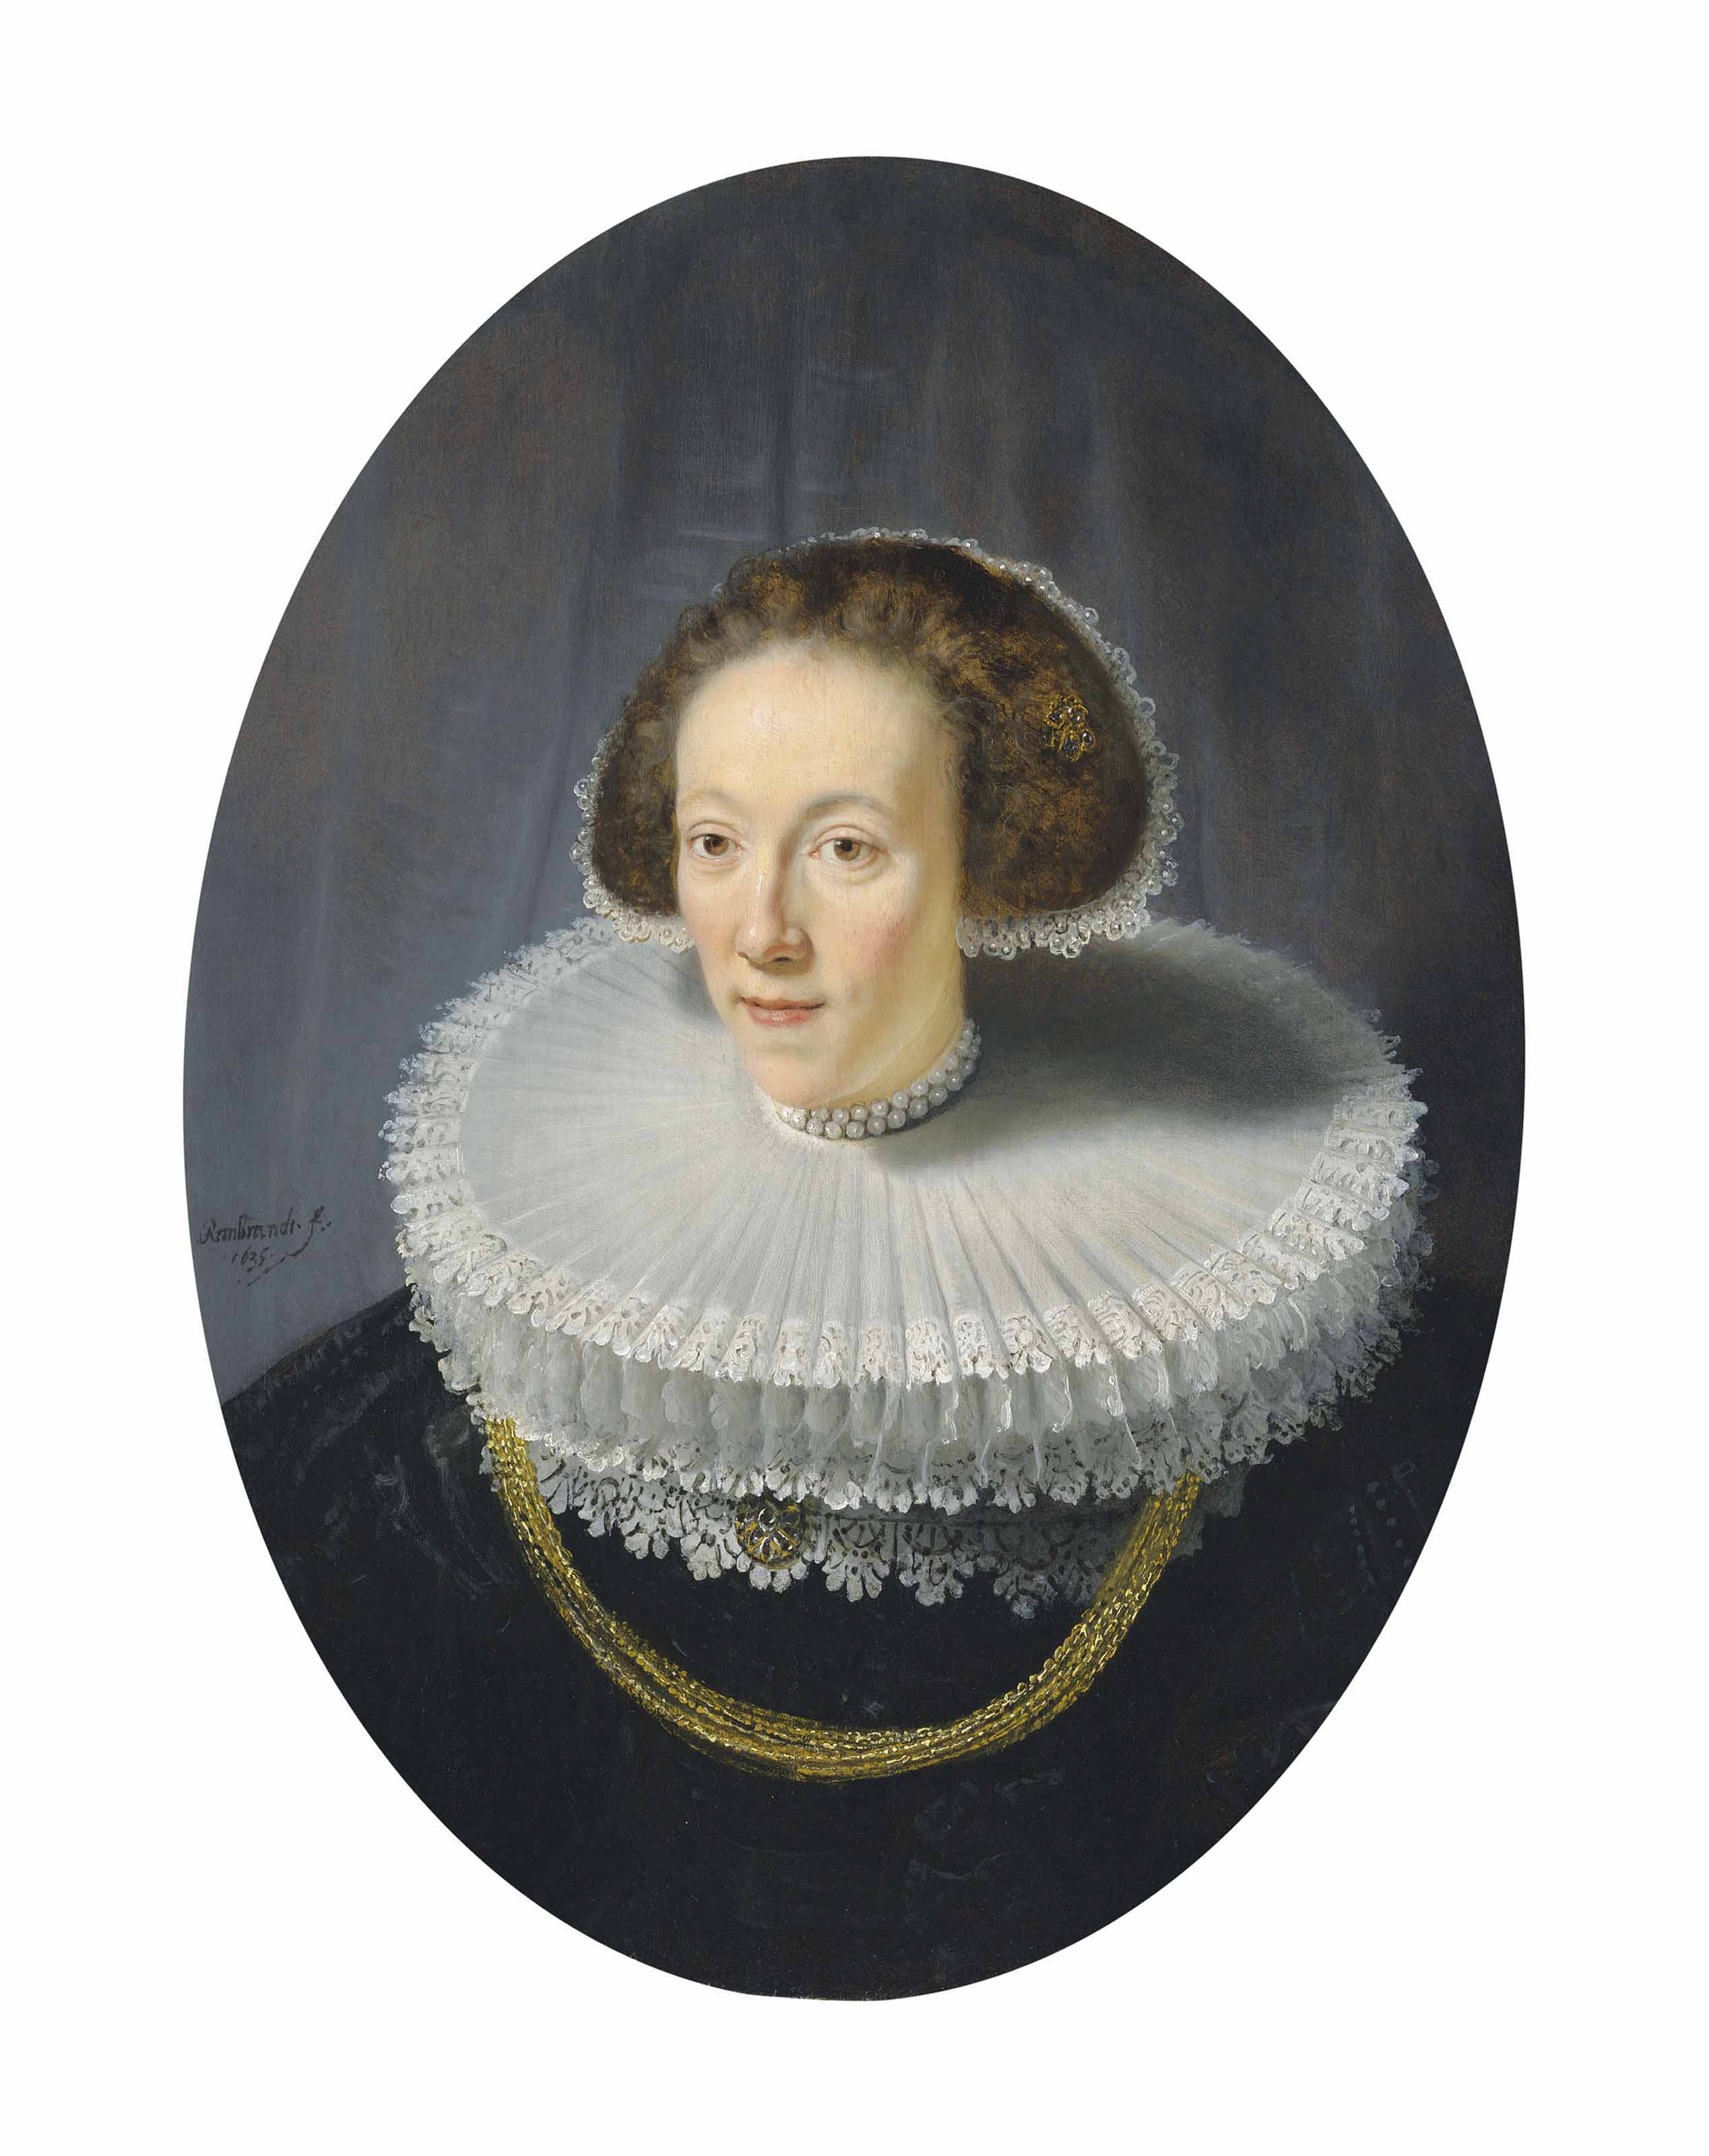 Portrait of Petronella Buys (1610-1670), bust-length, in a brocaded black gown, bobin lace-trimmed double cartwheel ruff and pearled diadem cap